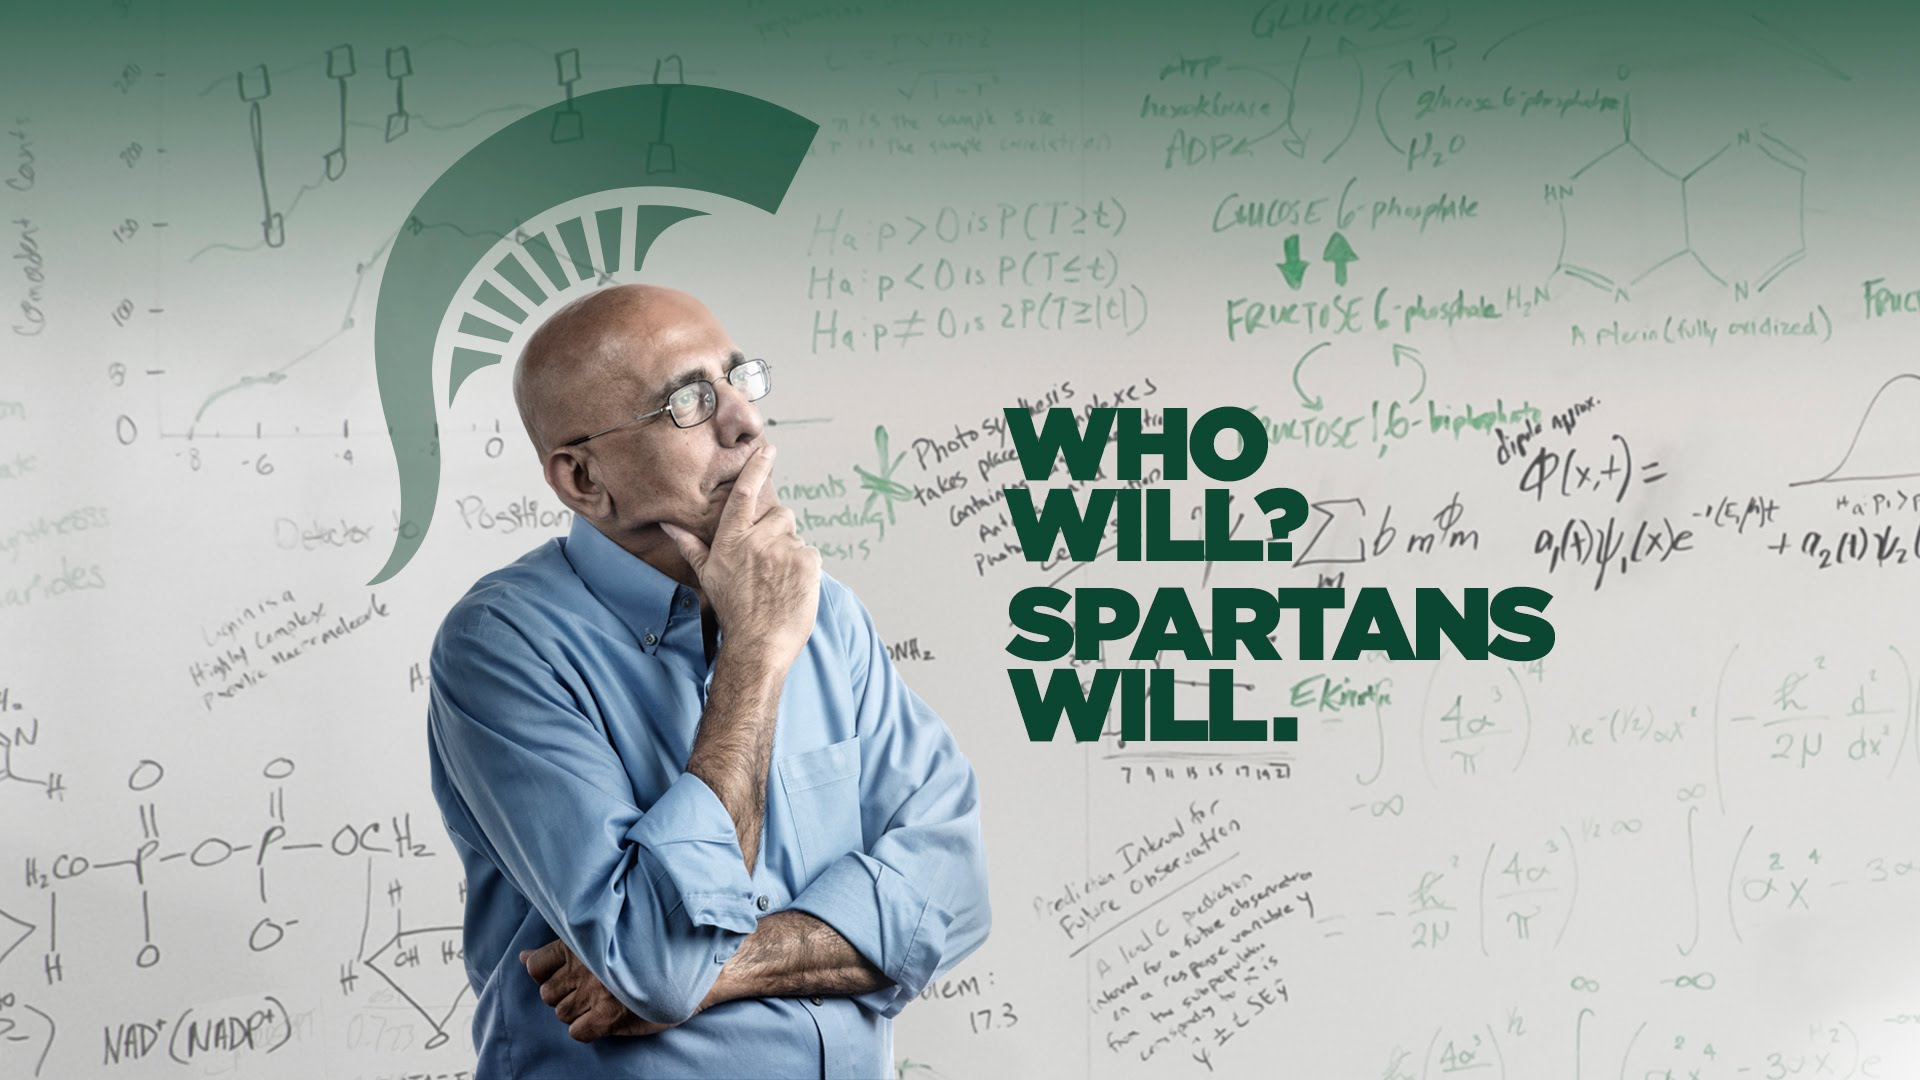 Michigan State University Spartans image